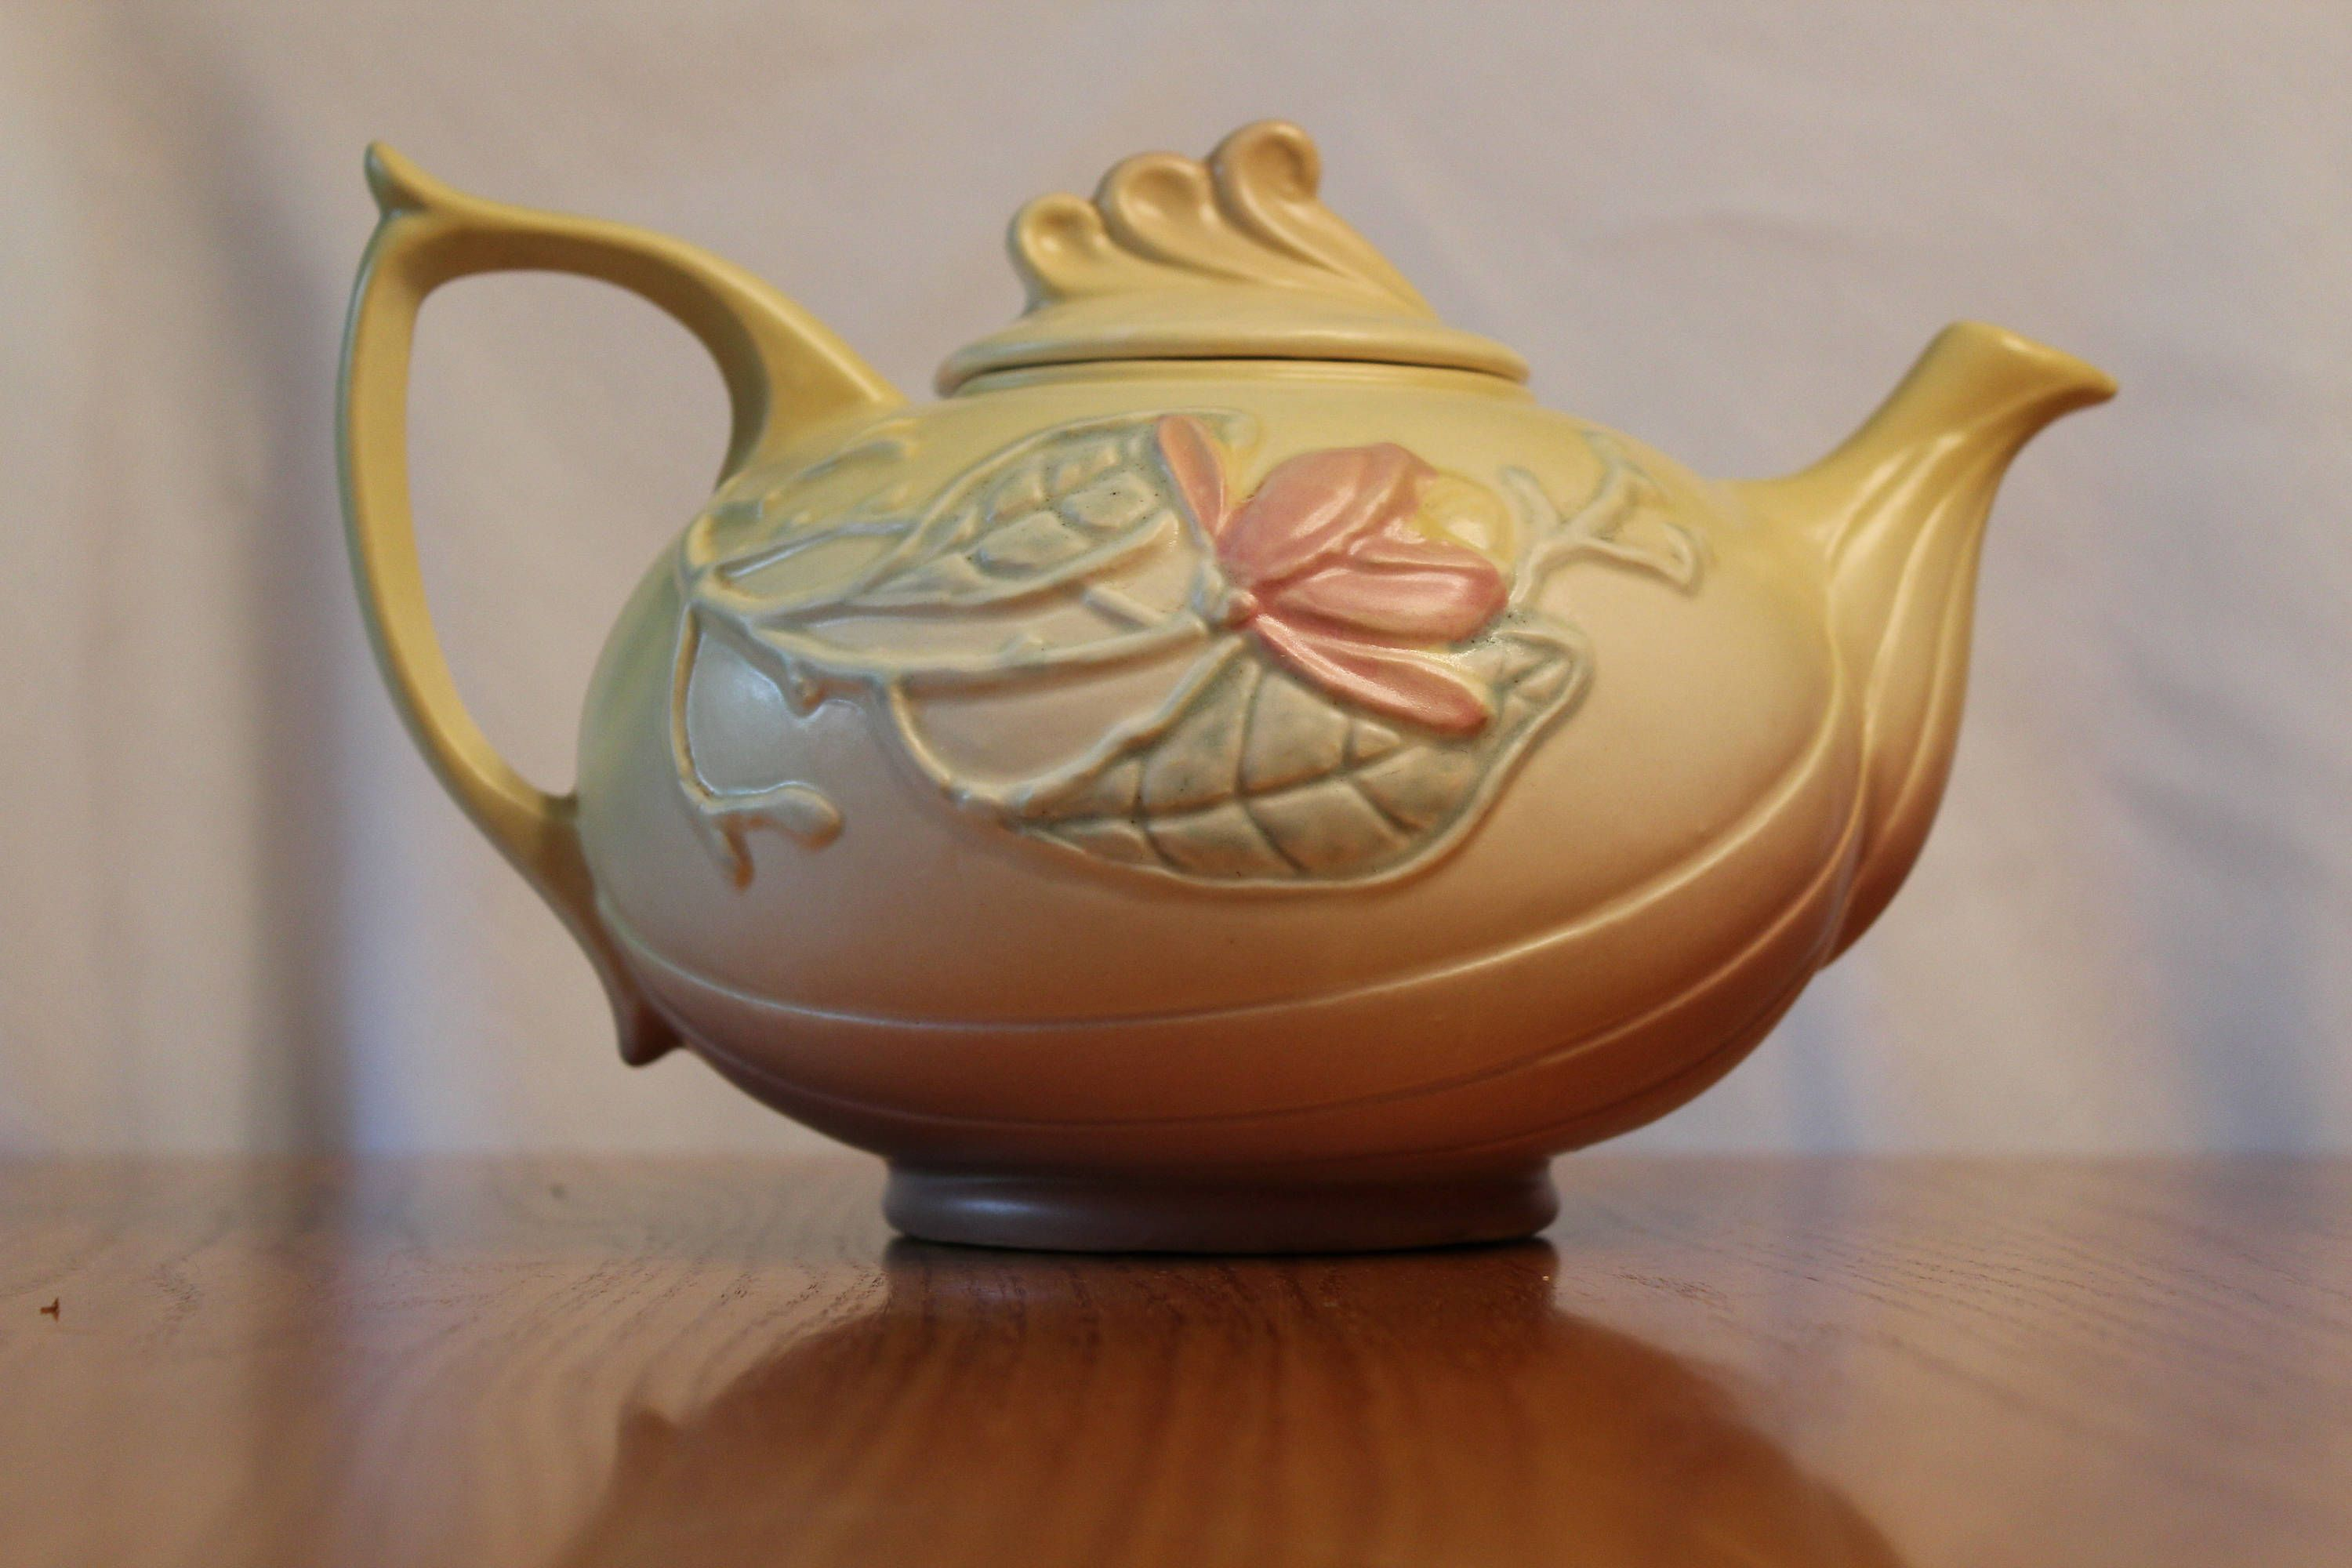 Hull Art Magnolia Pottery Tea Pot - 23-6 1/2 by CandDTreasures on Etsy